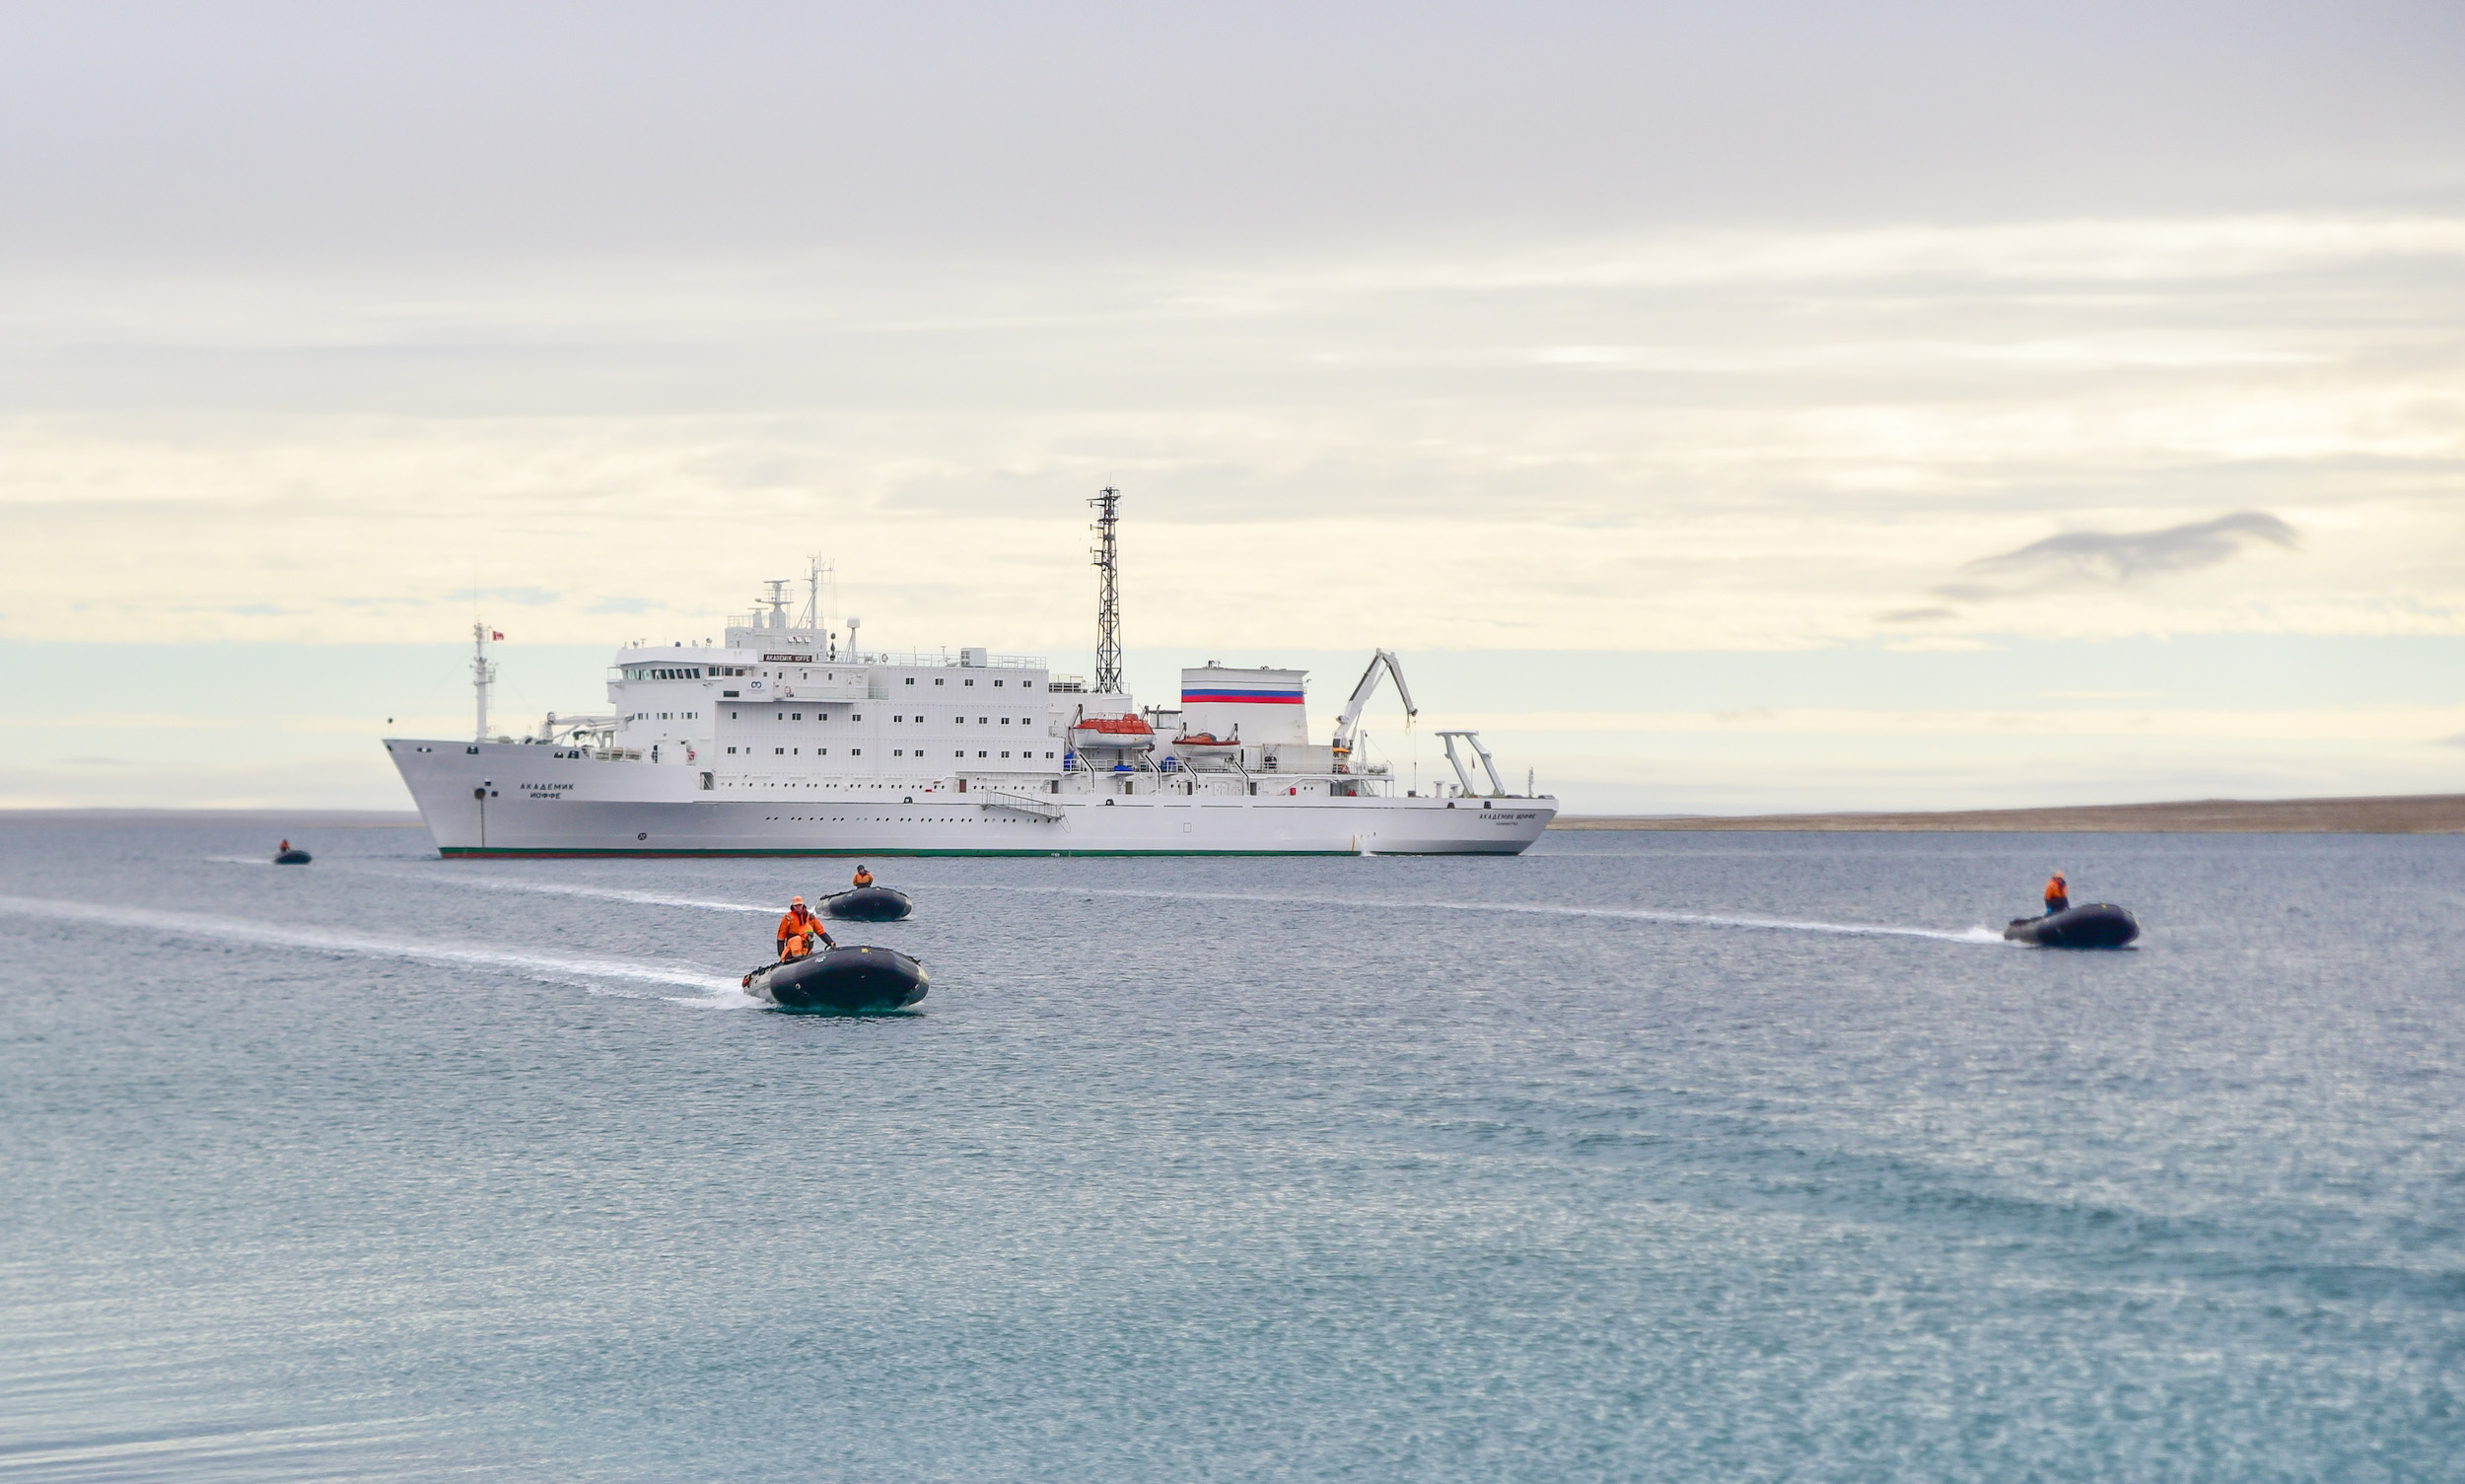 arctic-cruise-ship-nickwalton-5585